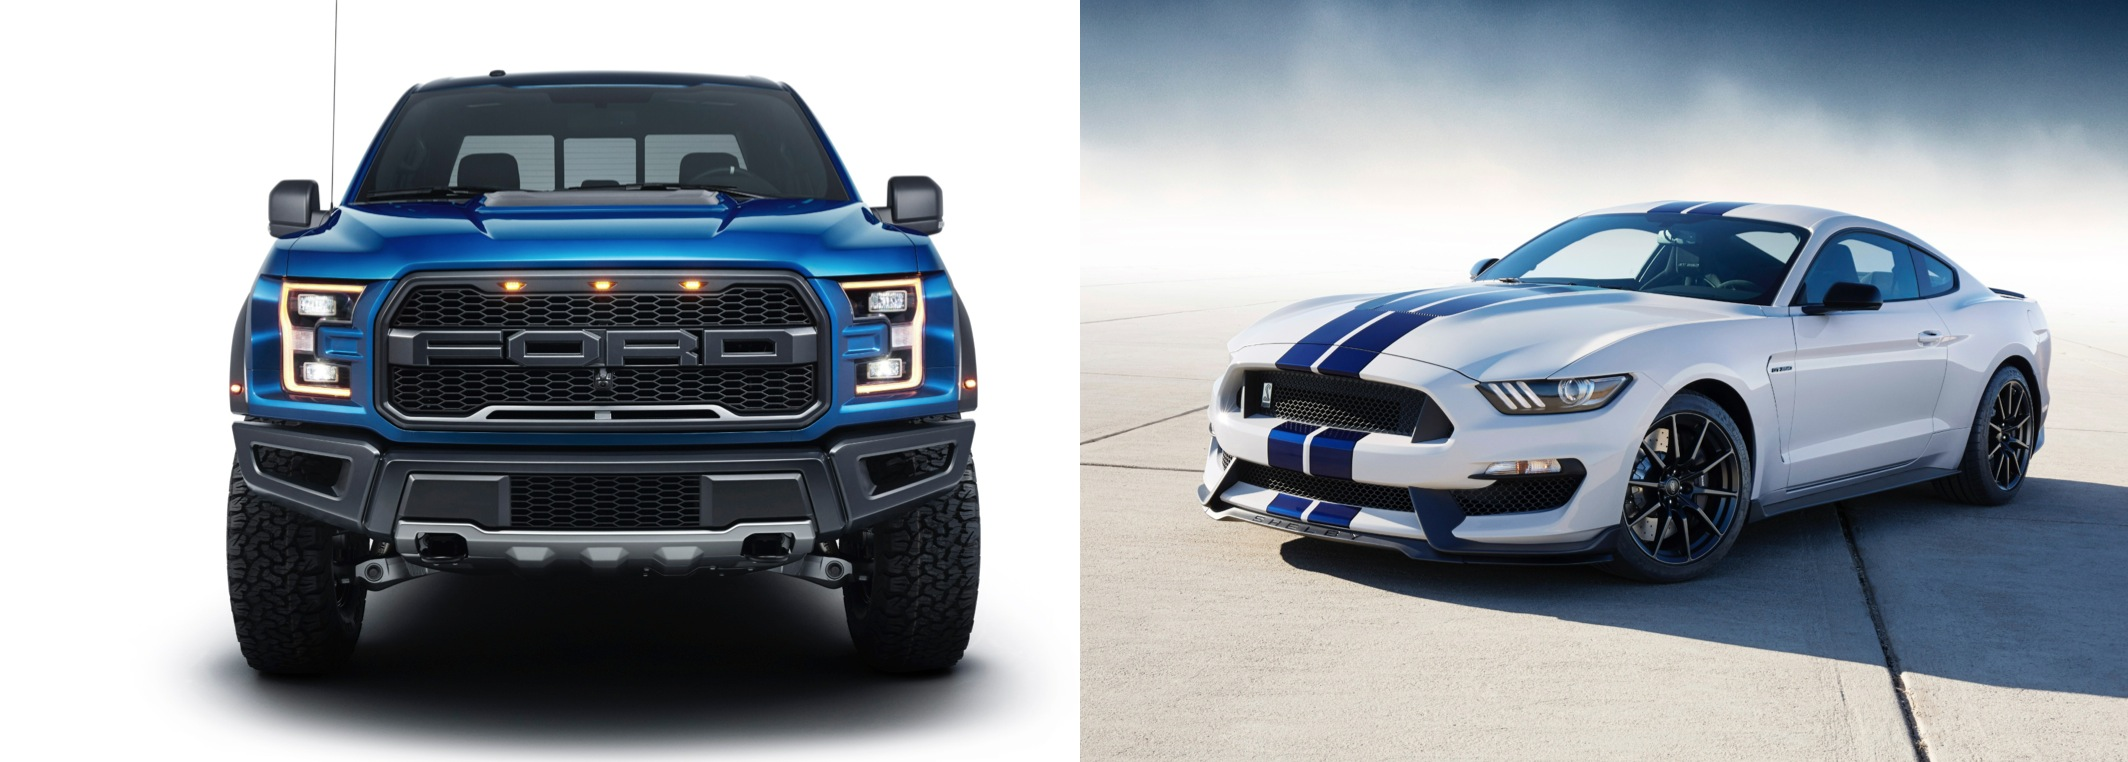 2017 Ford Raptor antecedent and GT350 corresponding pair.